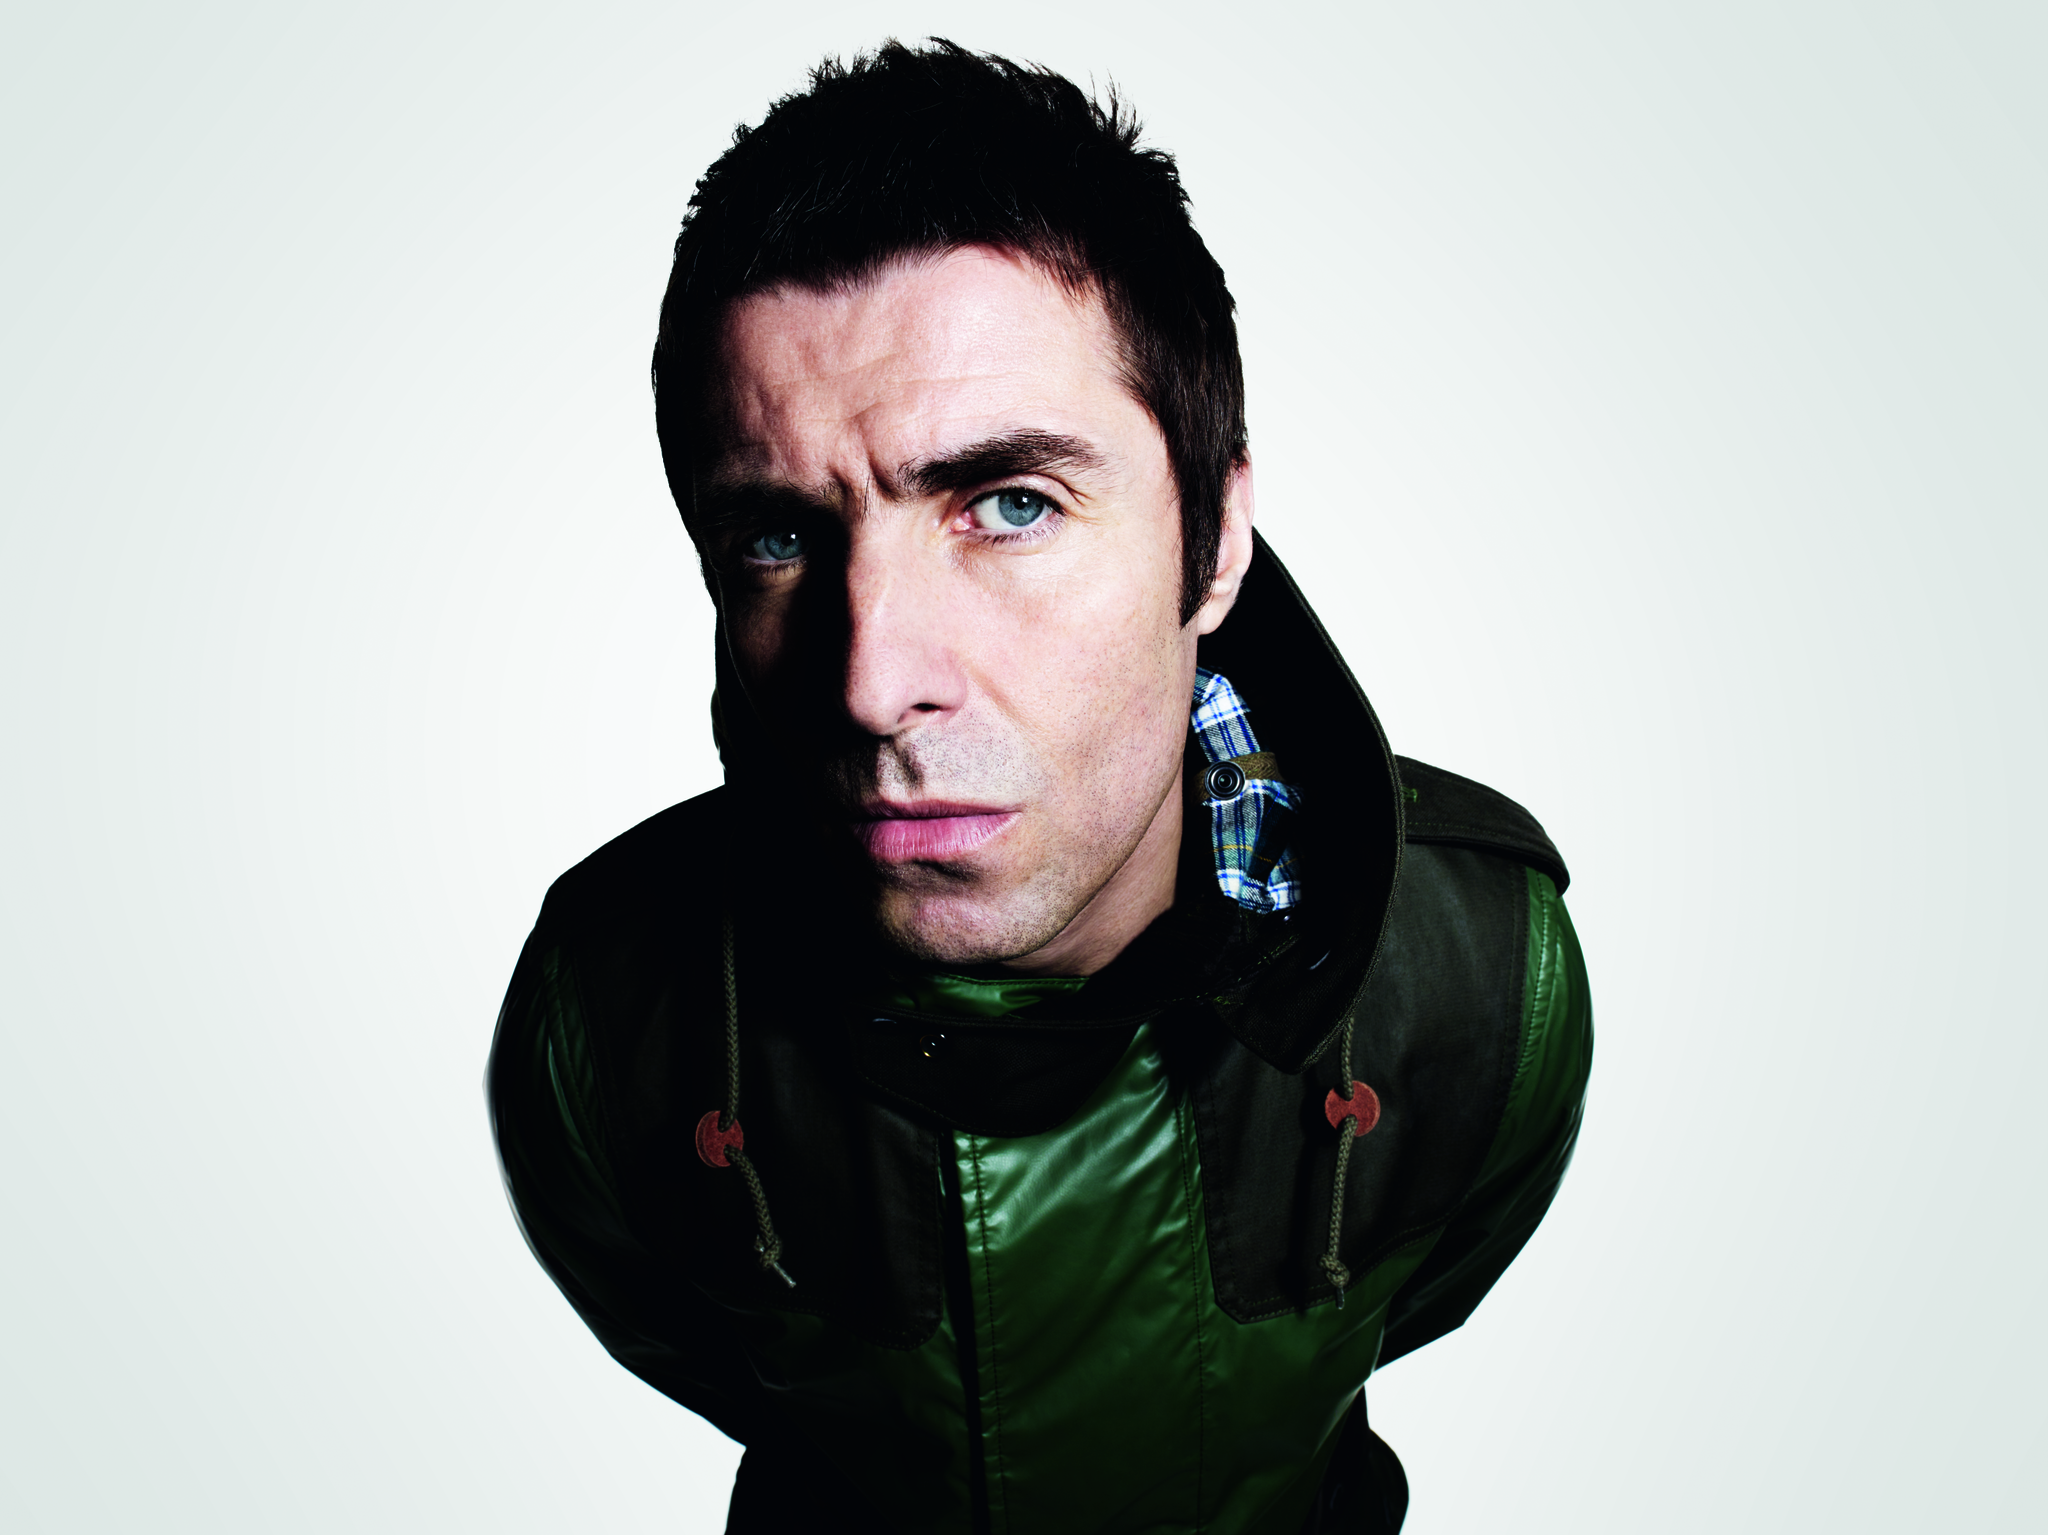 Interview: Liam Gallagher on New Album 'As You Were', Measuring Success & Music Videos